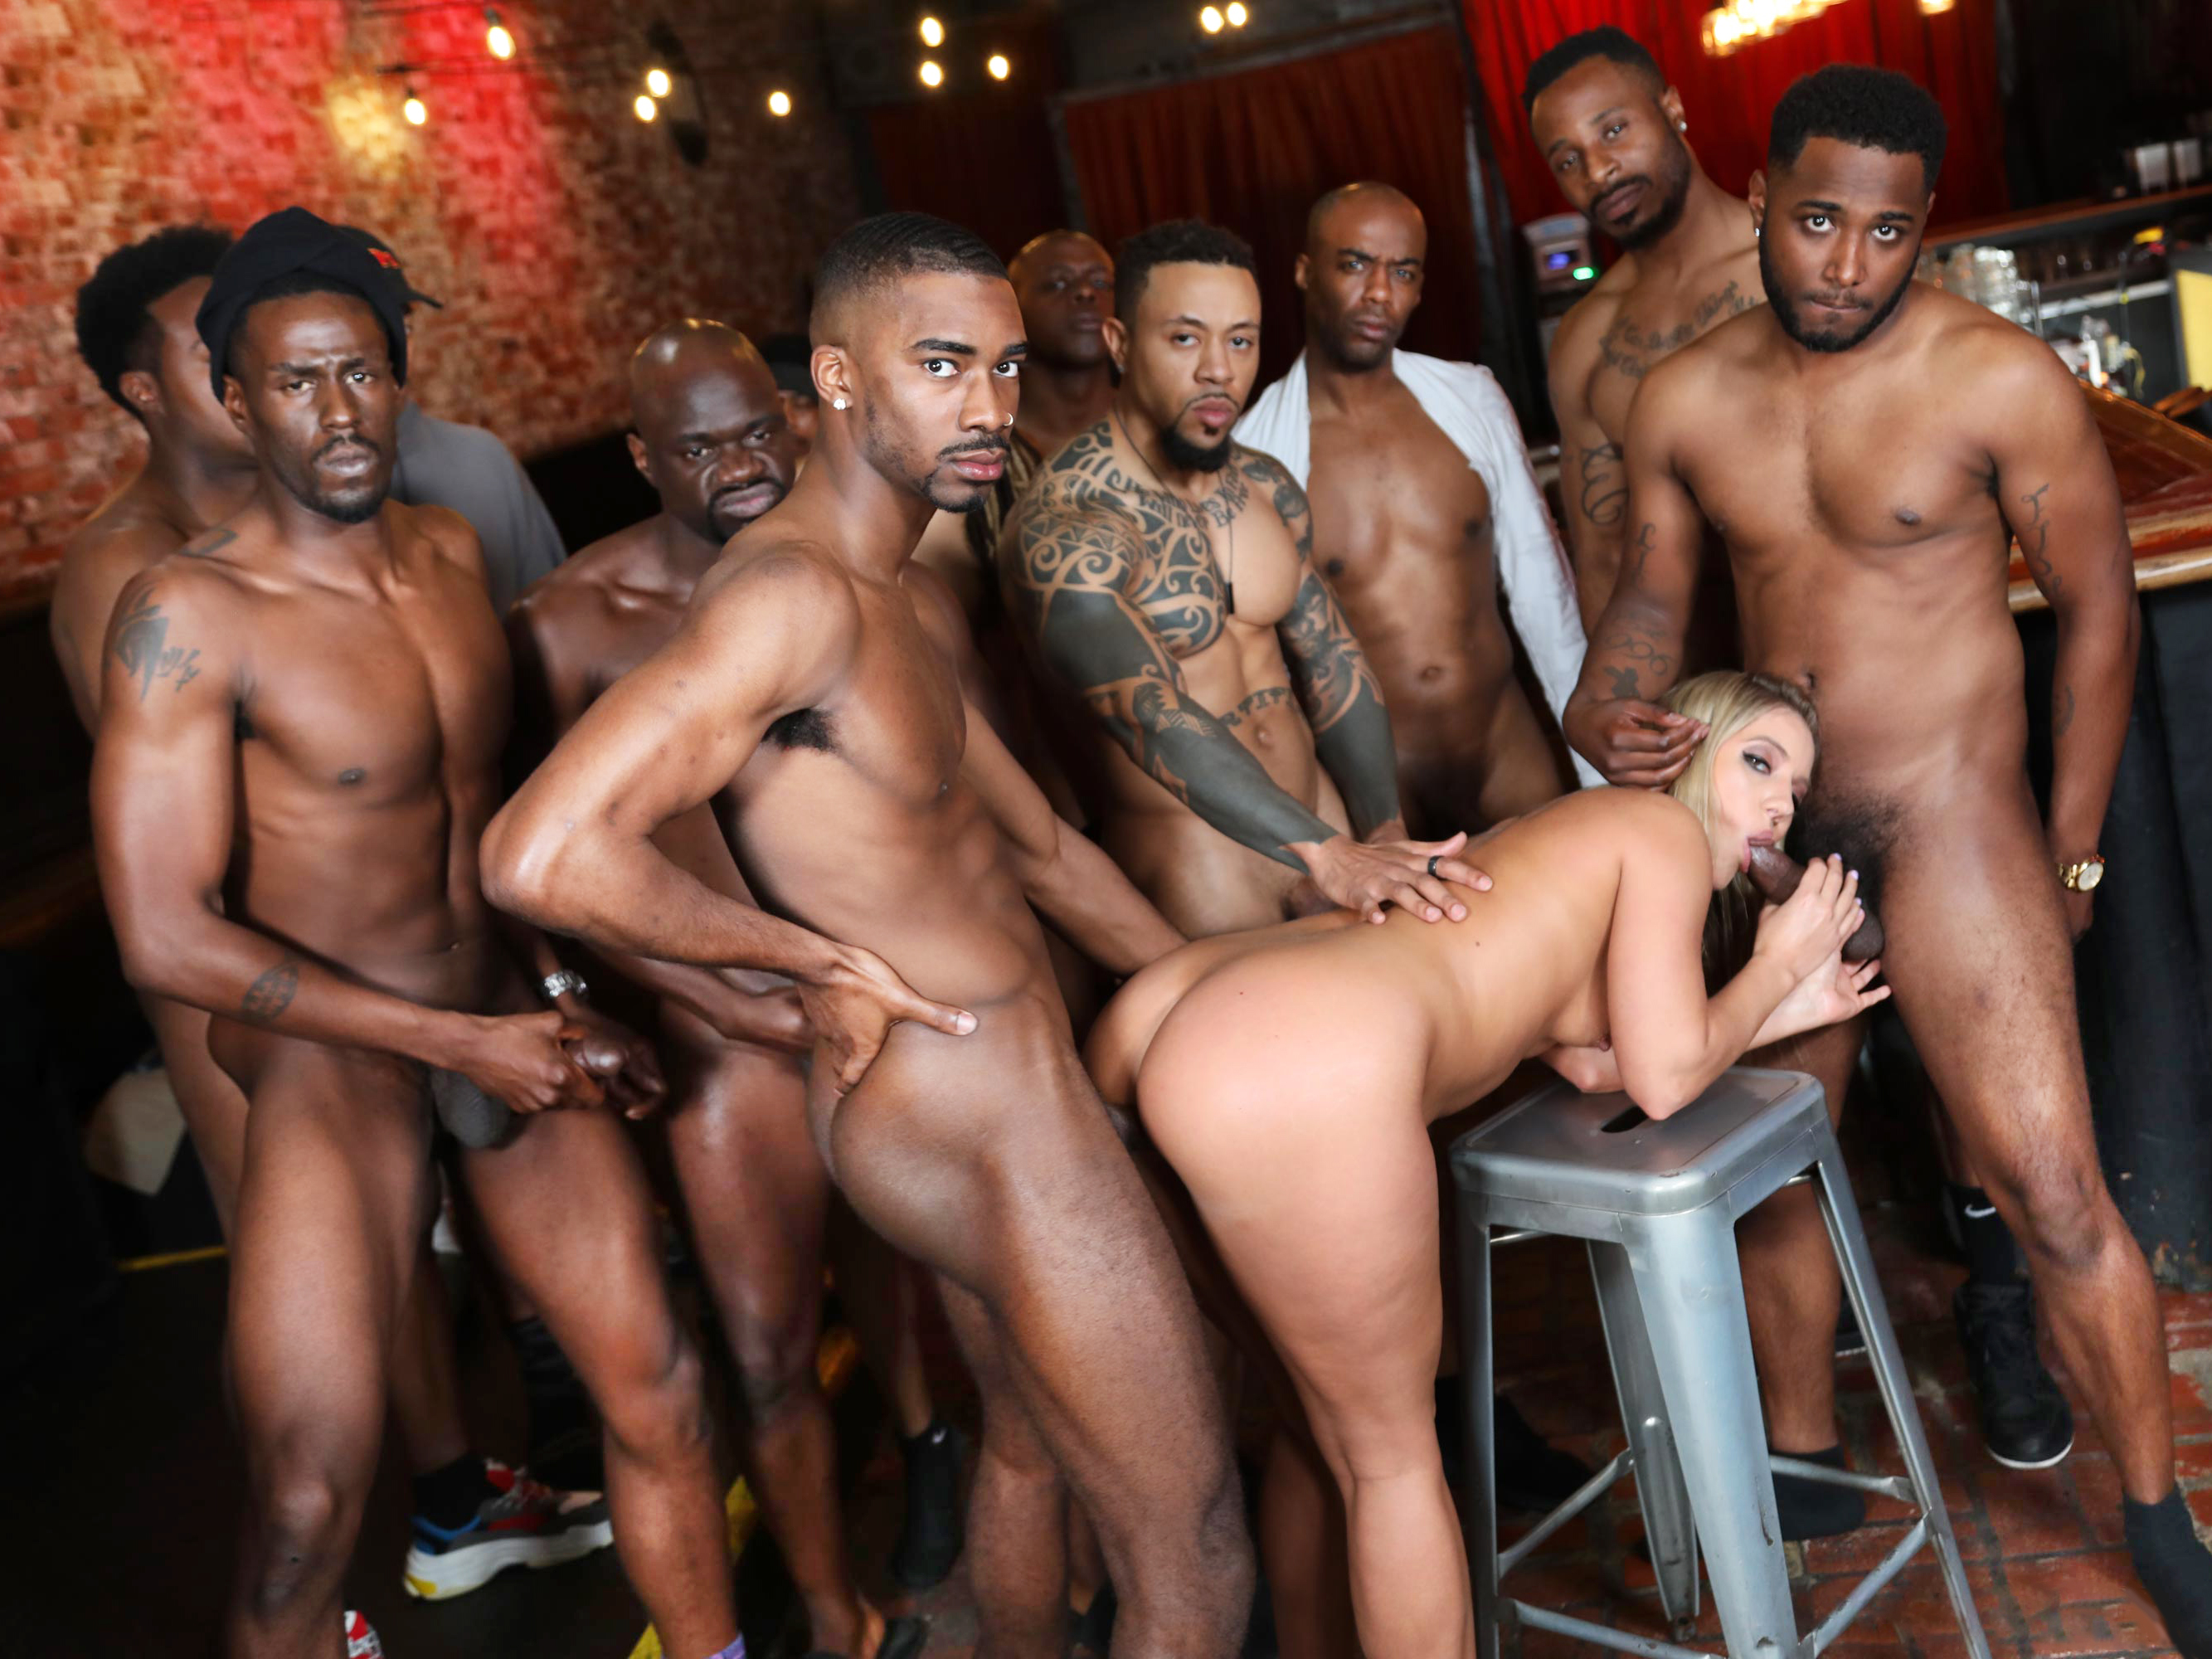 Interracial orgy with the neighbors